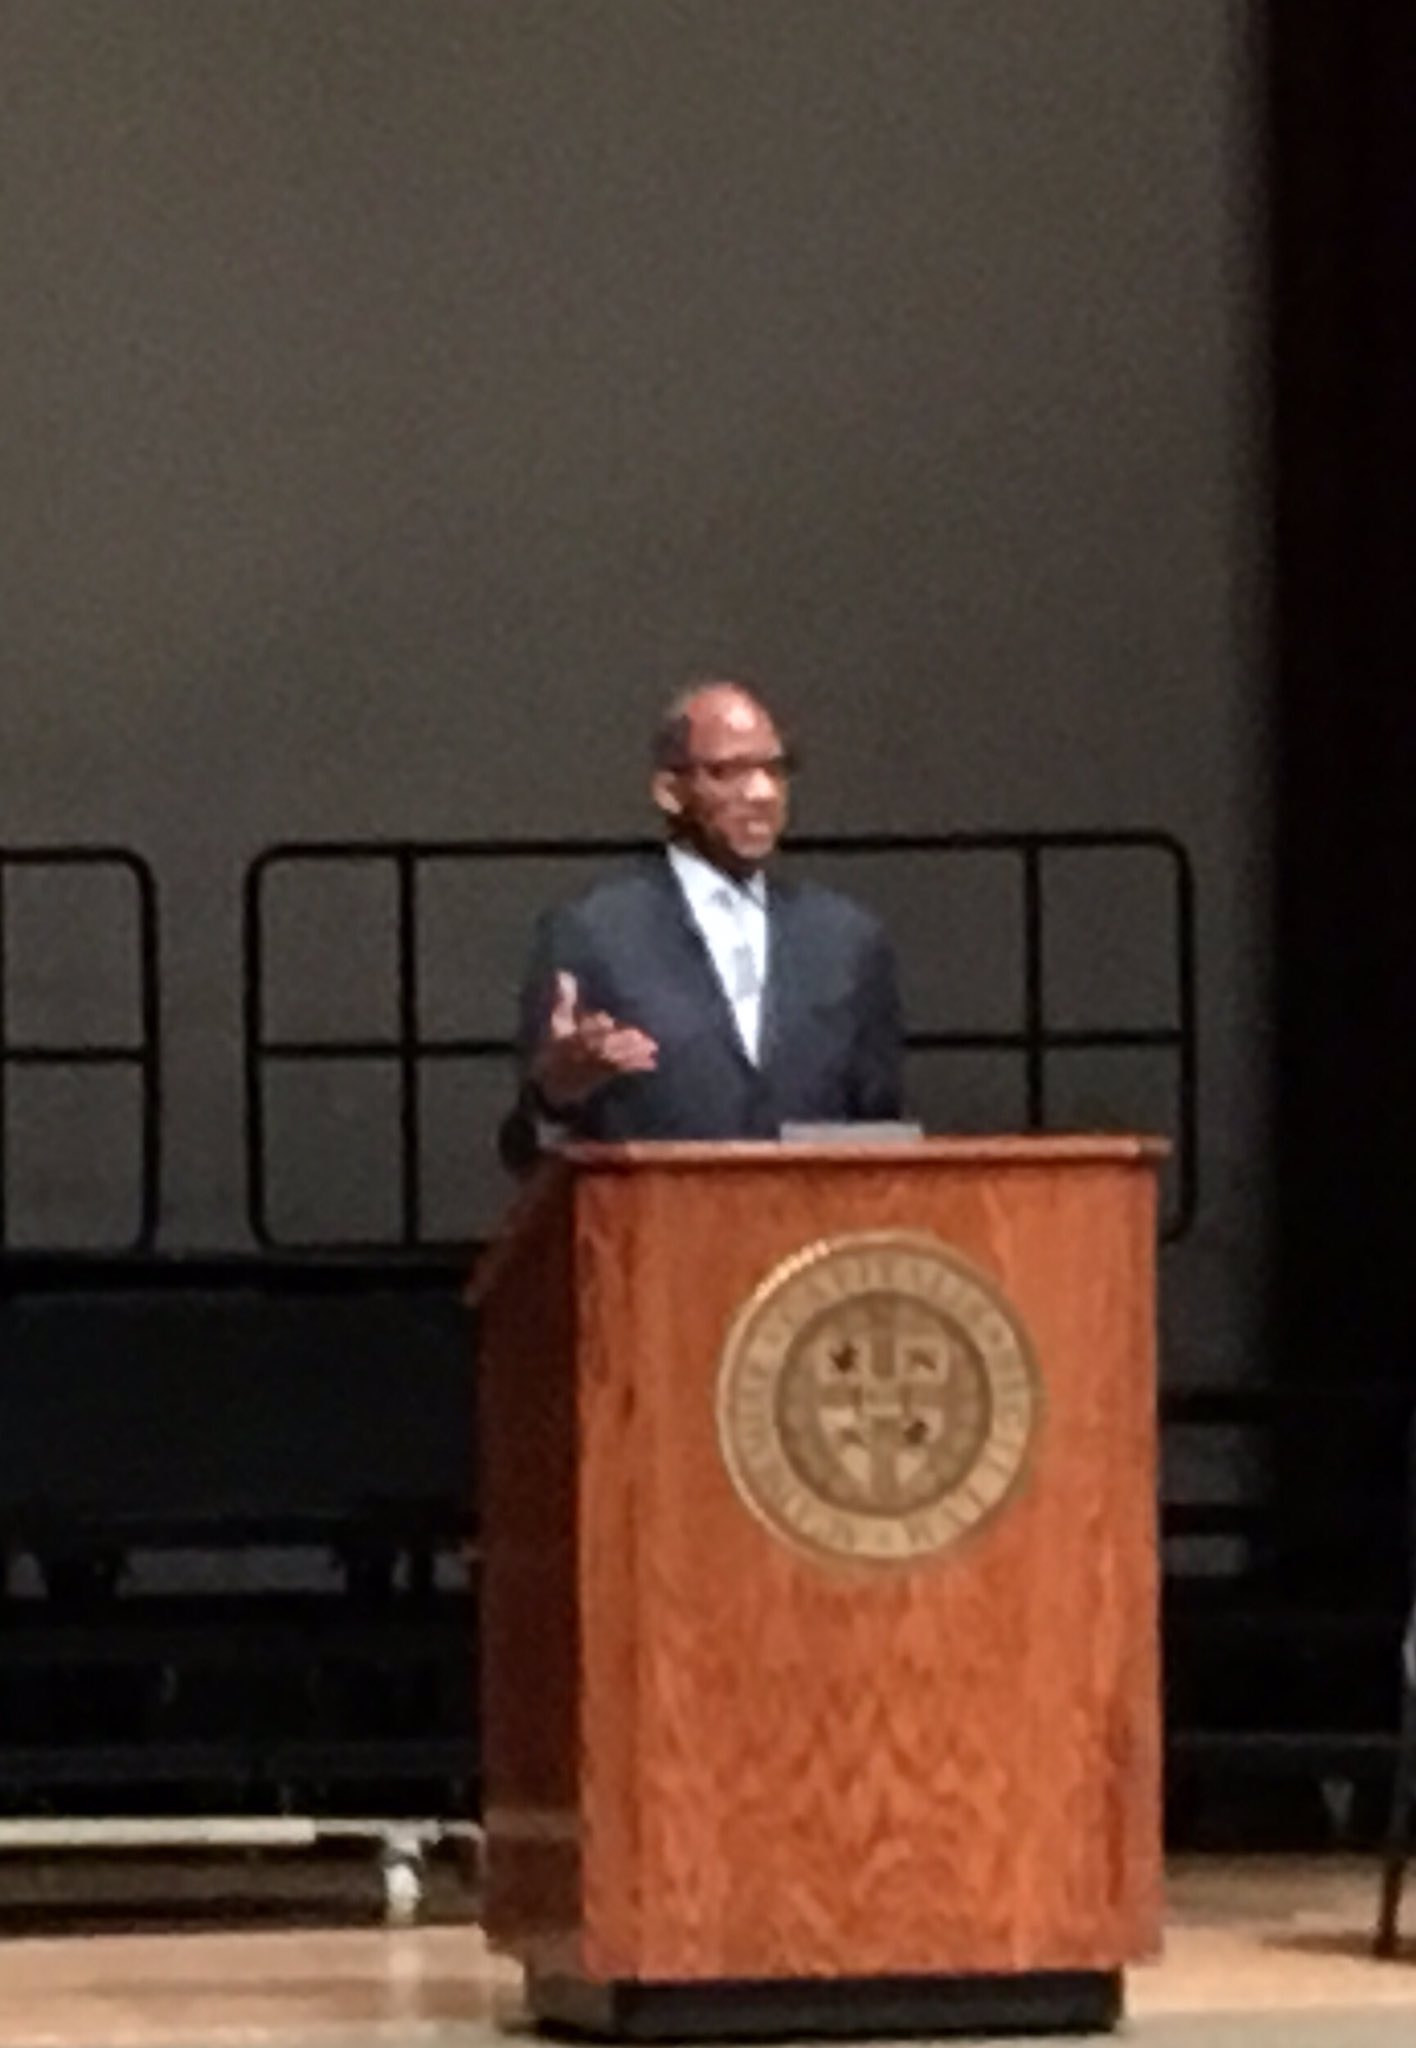 Journalist and author Wil Haygood. @Capital_U https://t.co/vd9vdk1wKW